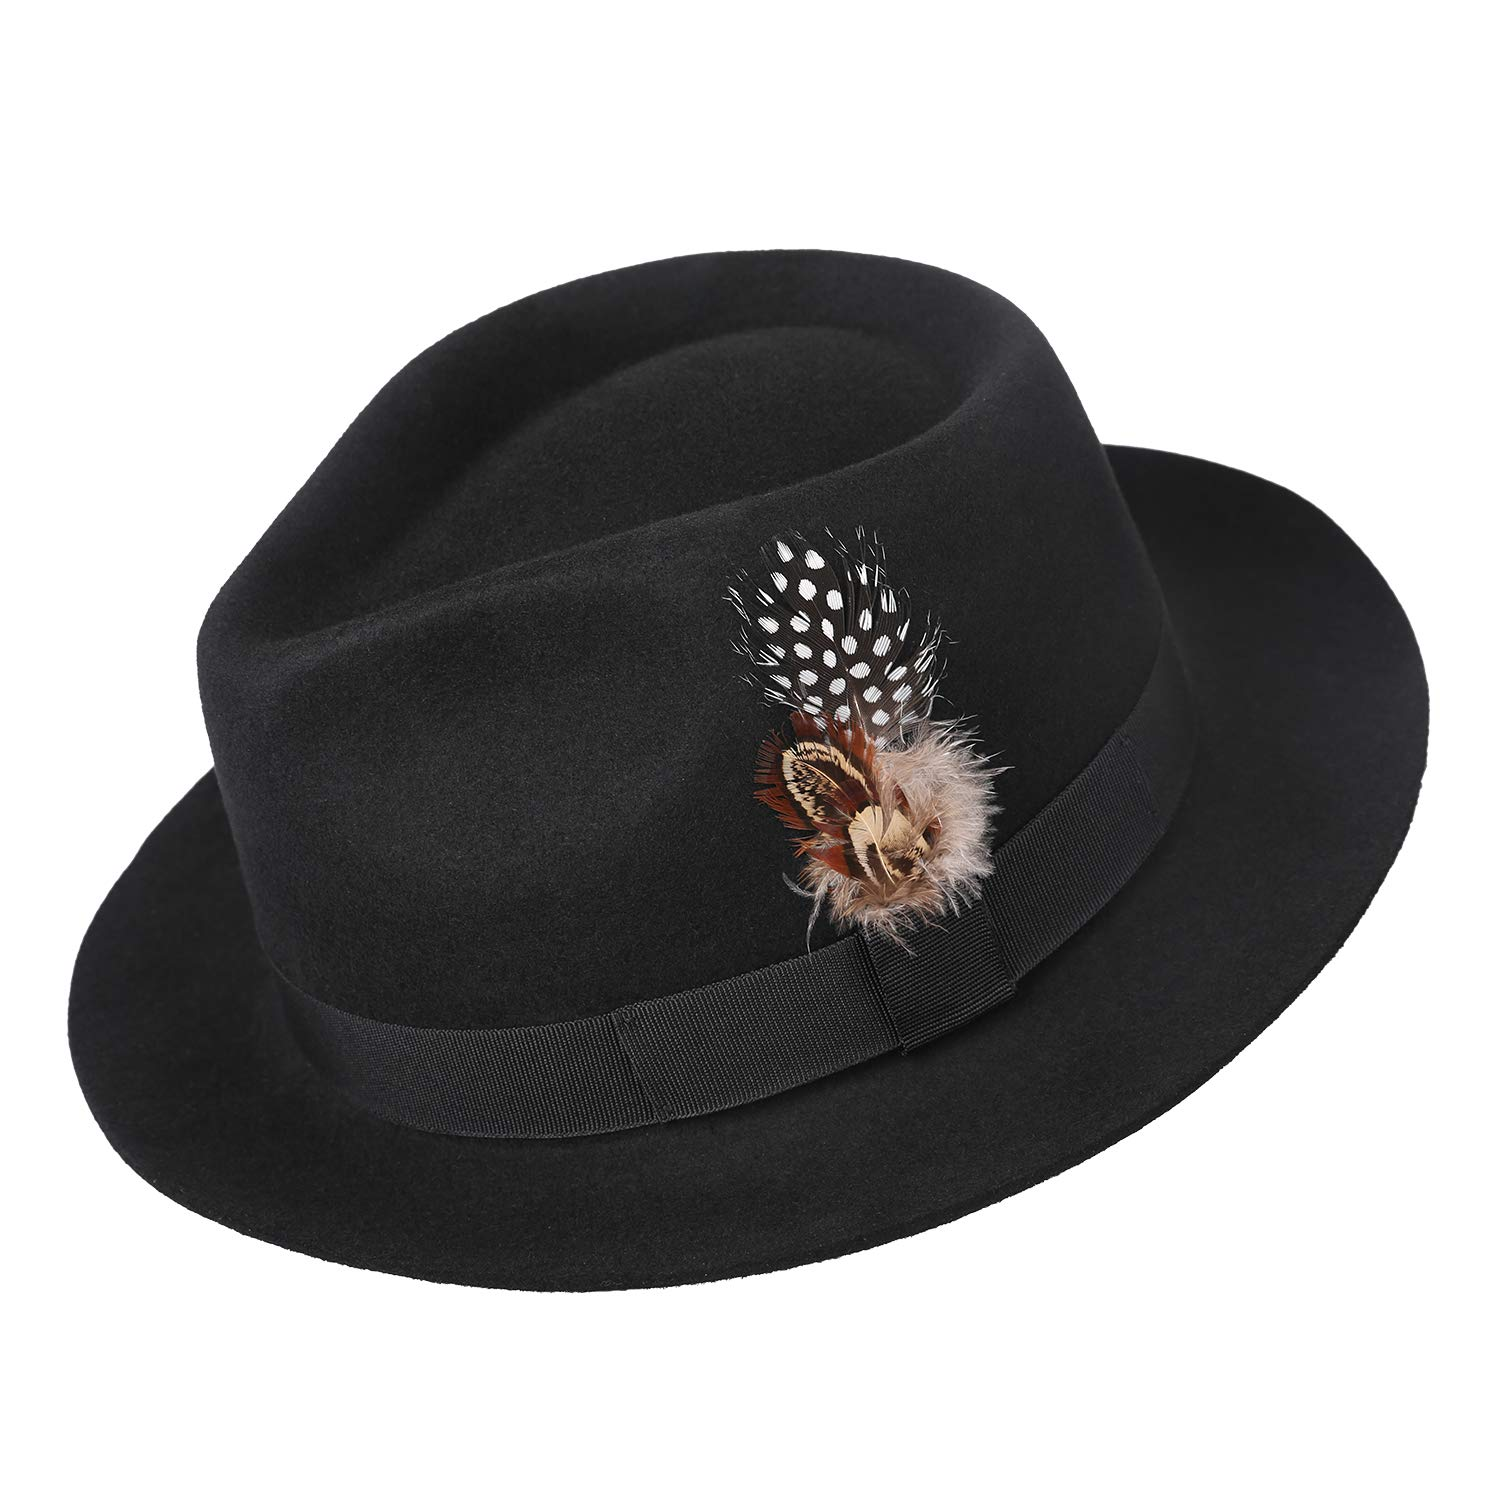 bc7264e5282 Deevoov Men Fedora Hats with Feather Australia Wool Felt Trilby Hat at  Amazon Men's Clothing store: